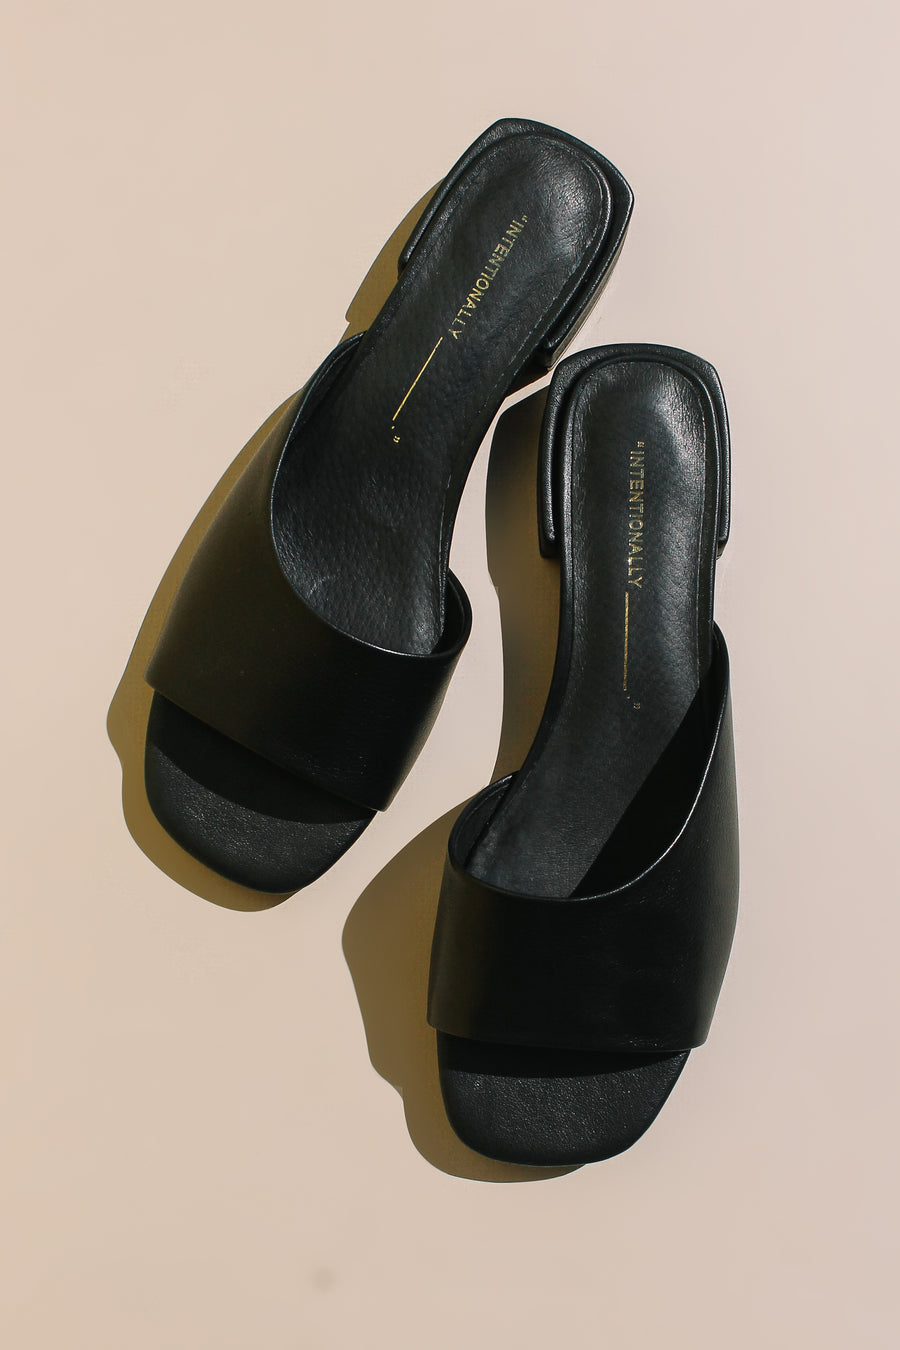 Intentionally Blank Jessi slide in black leather sandal summer | Pipe and Row